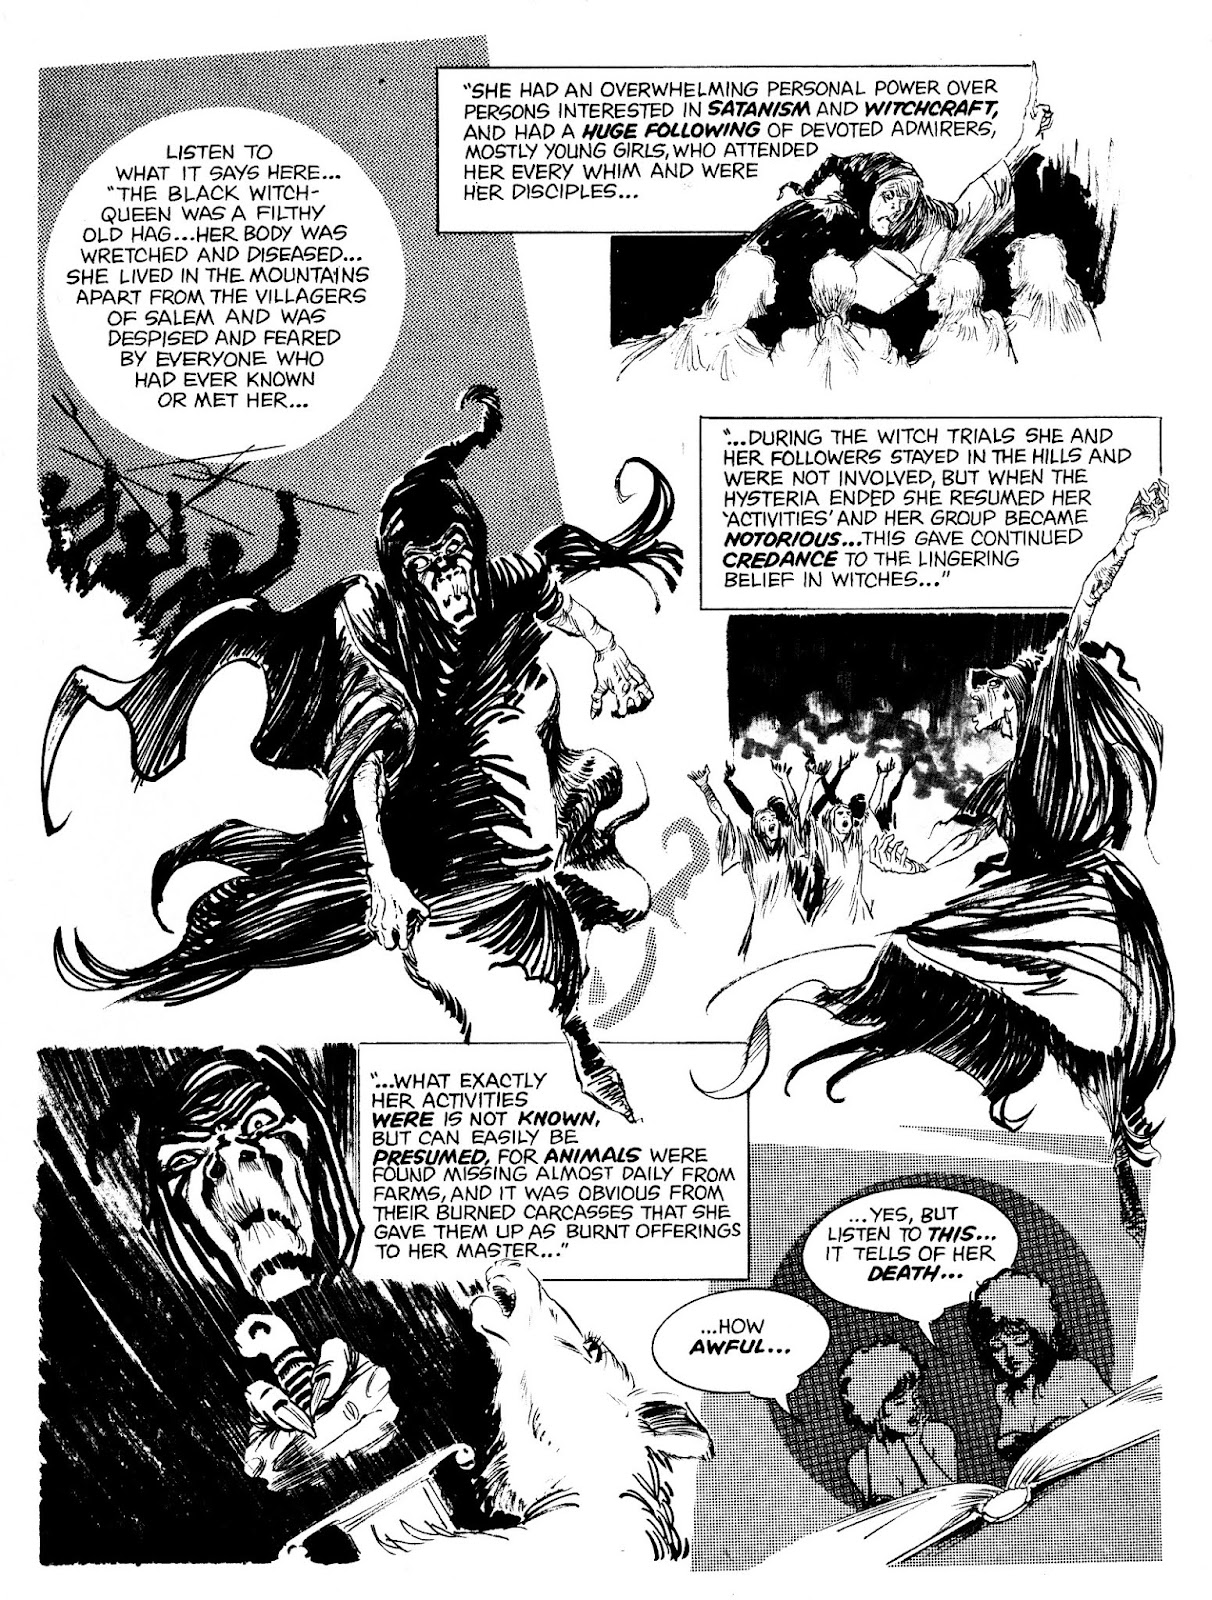 Scream (1973) issue 3 - Page 28